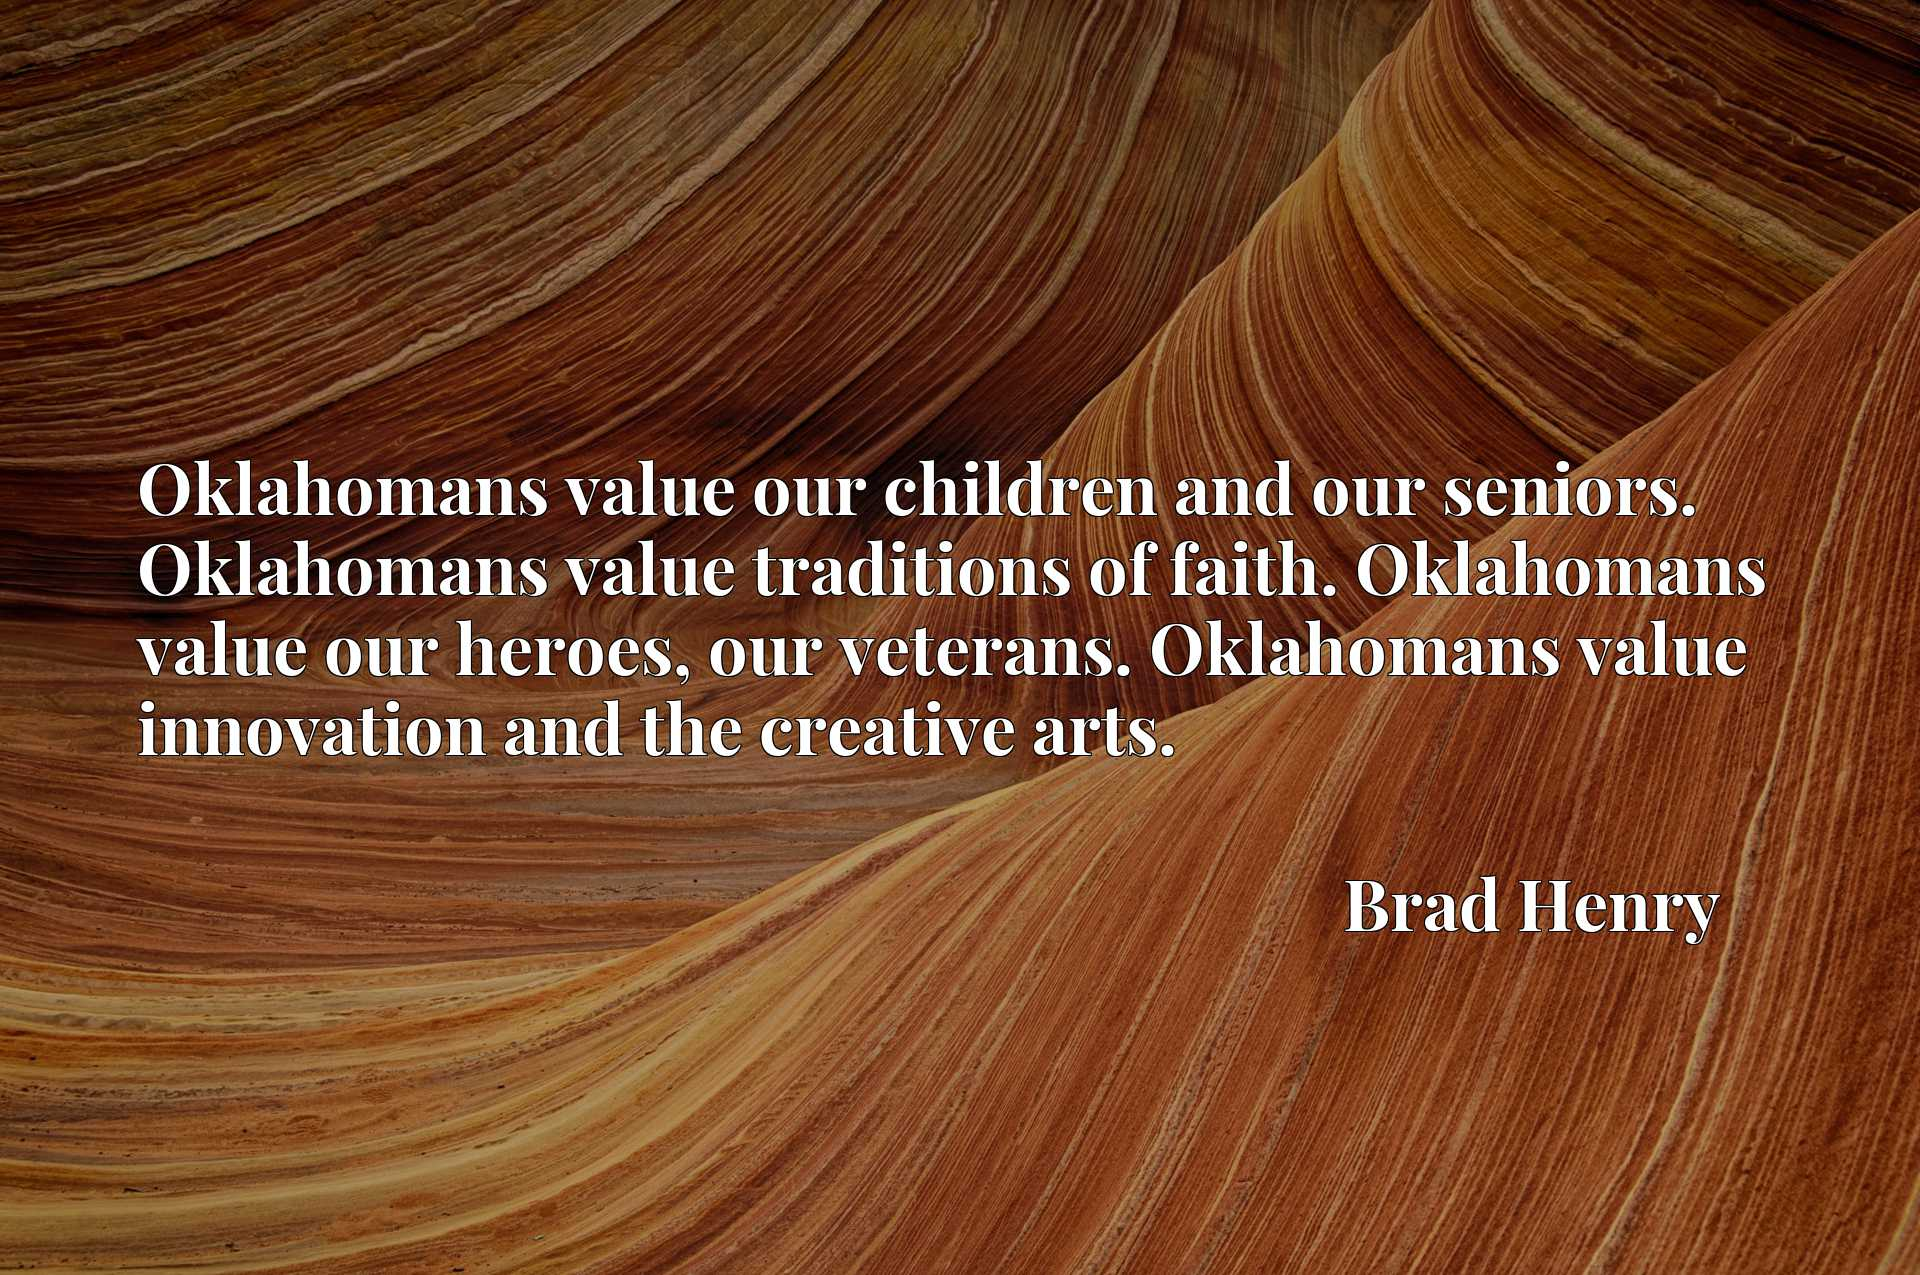 Oklahomans value our children and our seniors. Oklahomans value traditions of faith. Oklahomans value our heroes, our veterans. Oklahomans value innovation and the creative arts.